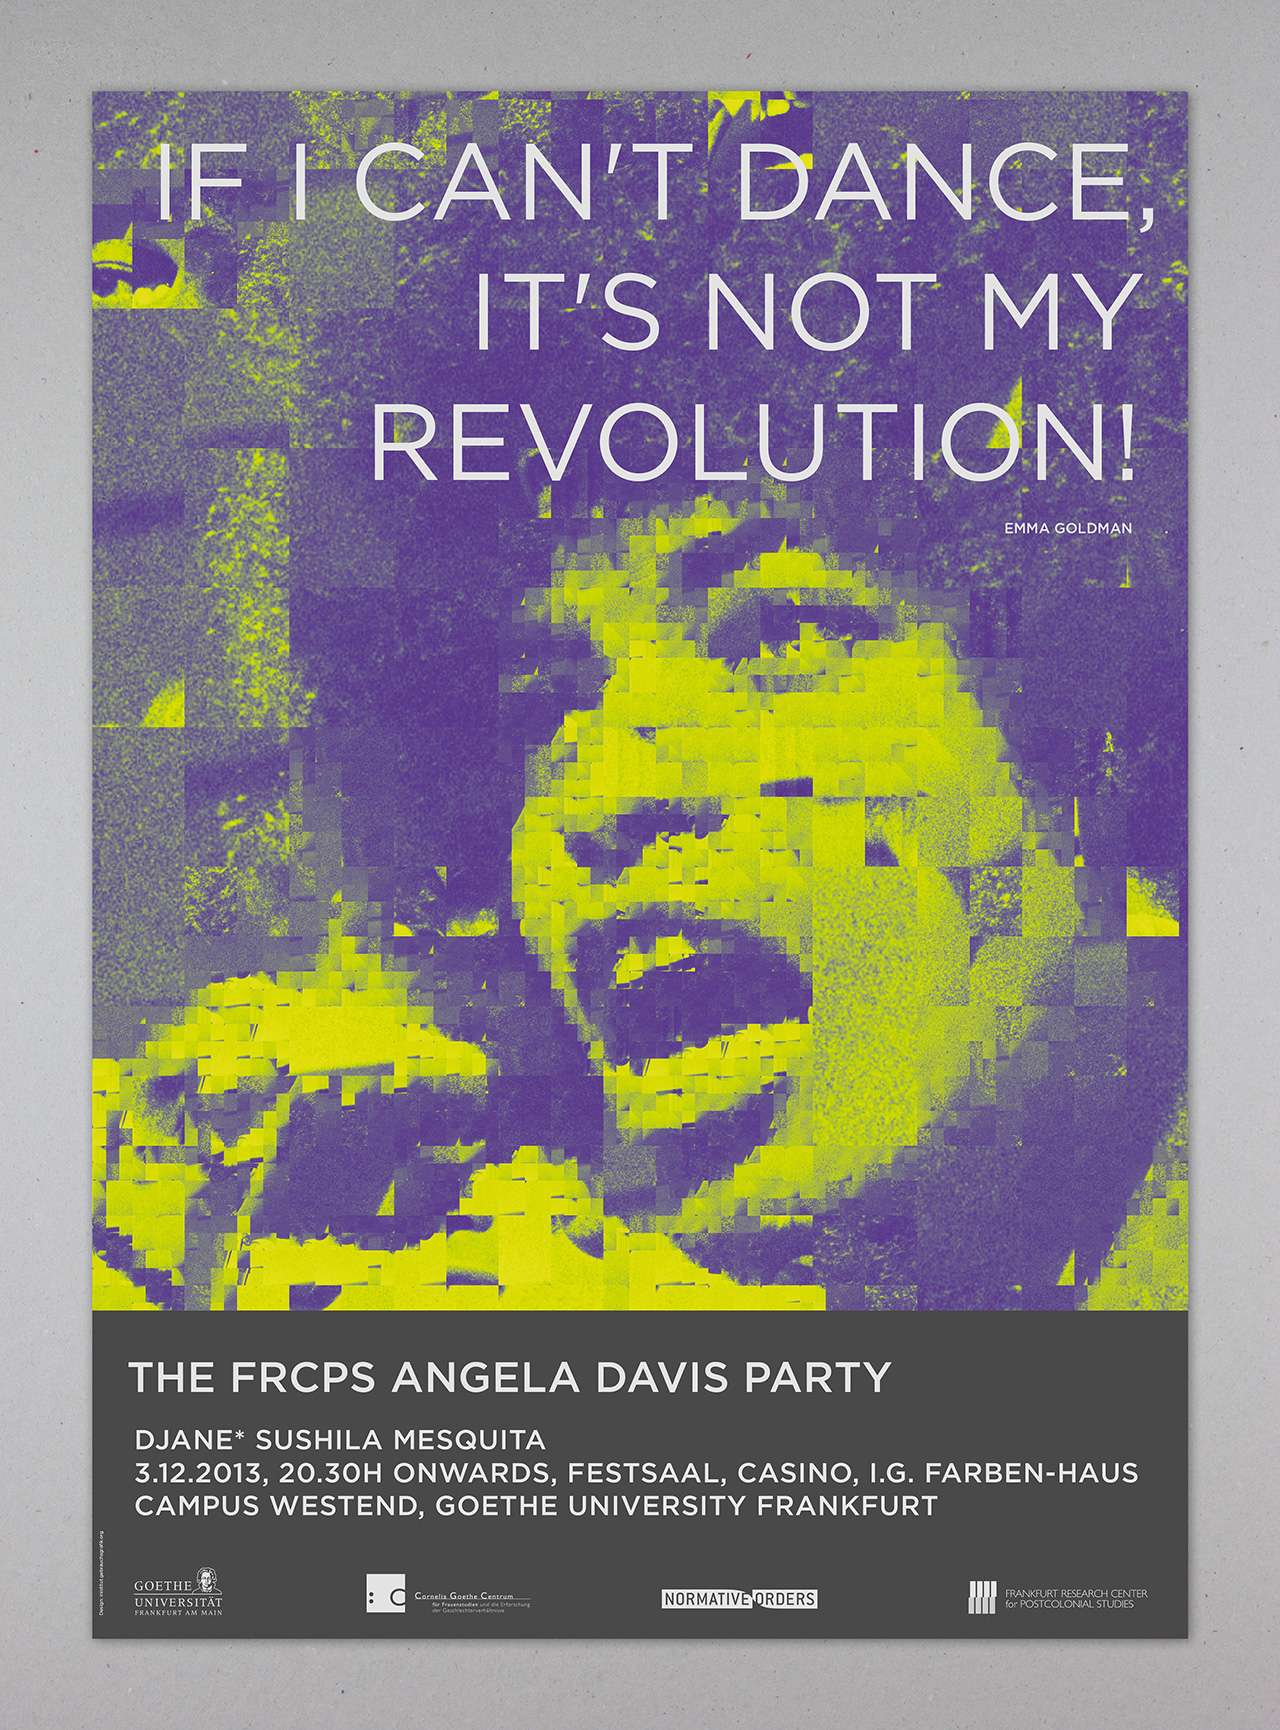 Angela Davis Party: If I can't dance, it's not my revolution!